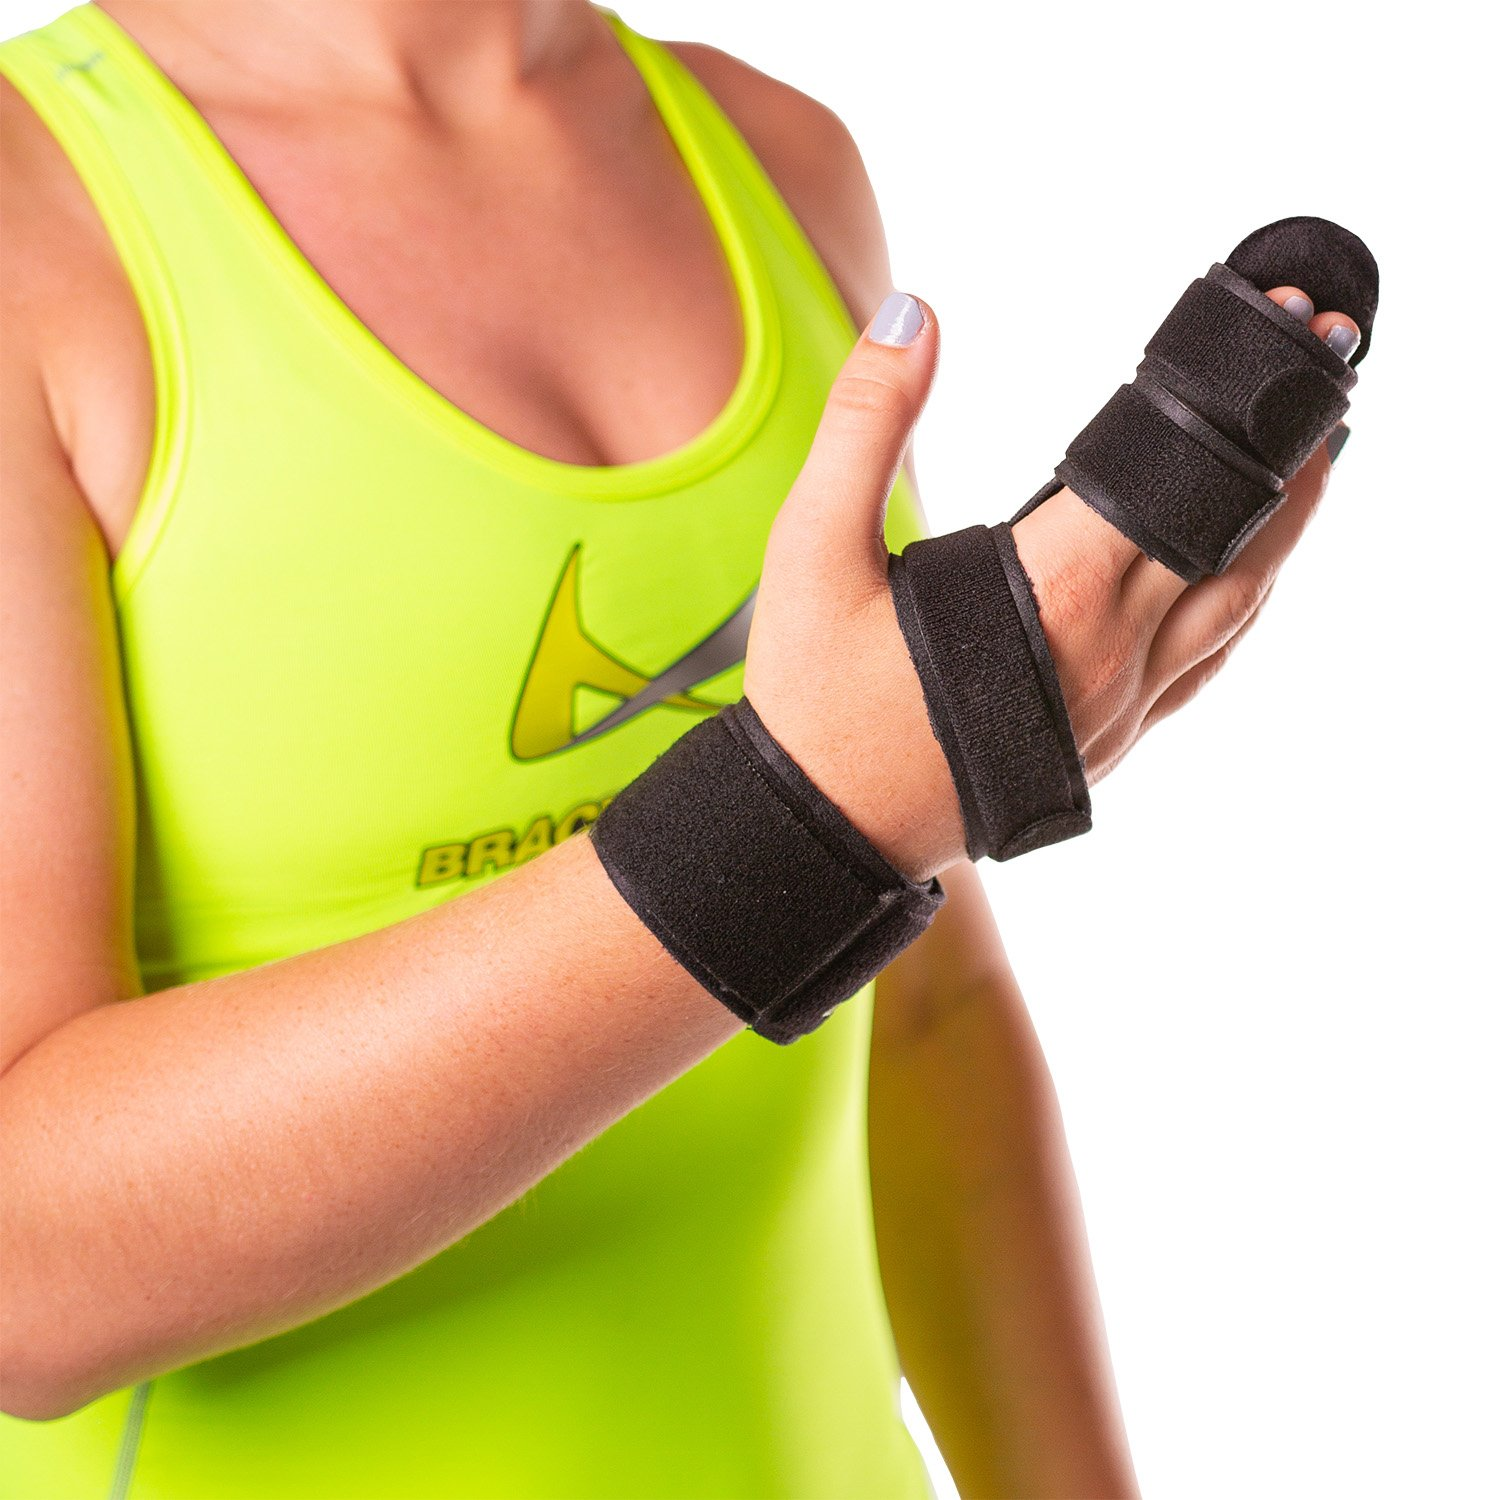 BraceAbility Hand & Two Finger Immobilizer | Buddy Splint Cast for Broken Joints, Trigger Finger Extension, Sprains and Contractures to Straighten Middle, Index & Pinky Knuckles (SMALL) by BraceAbility